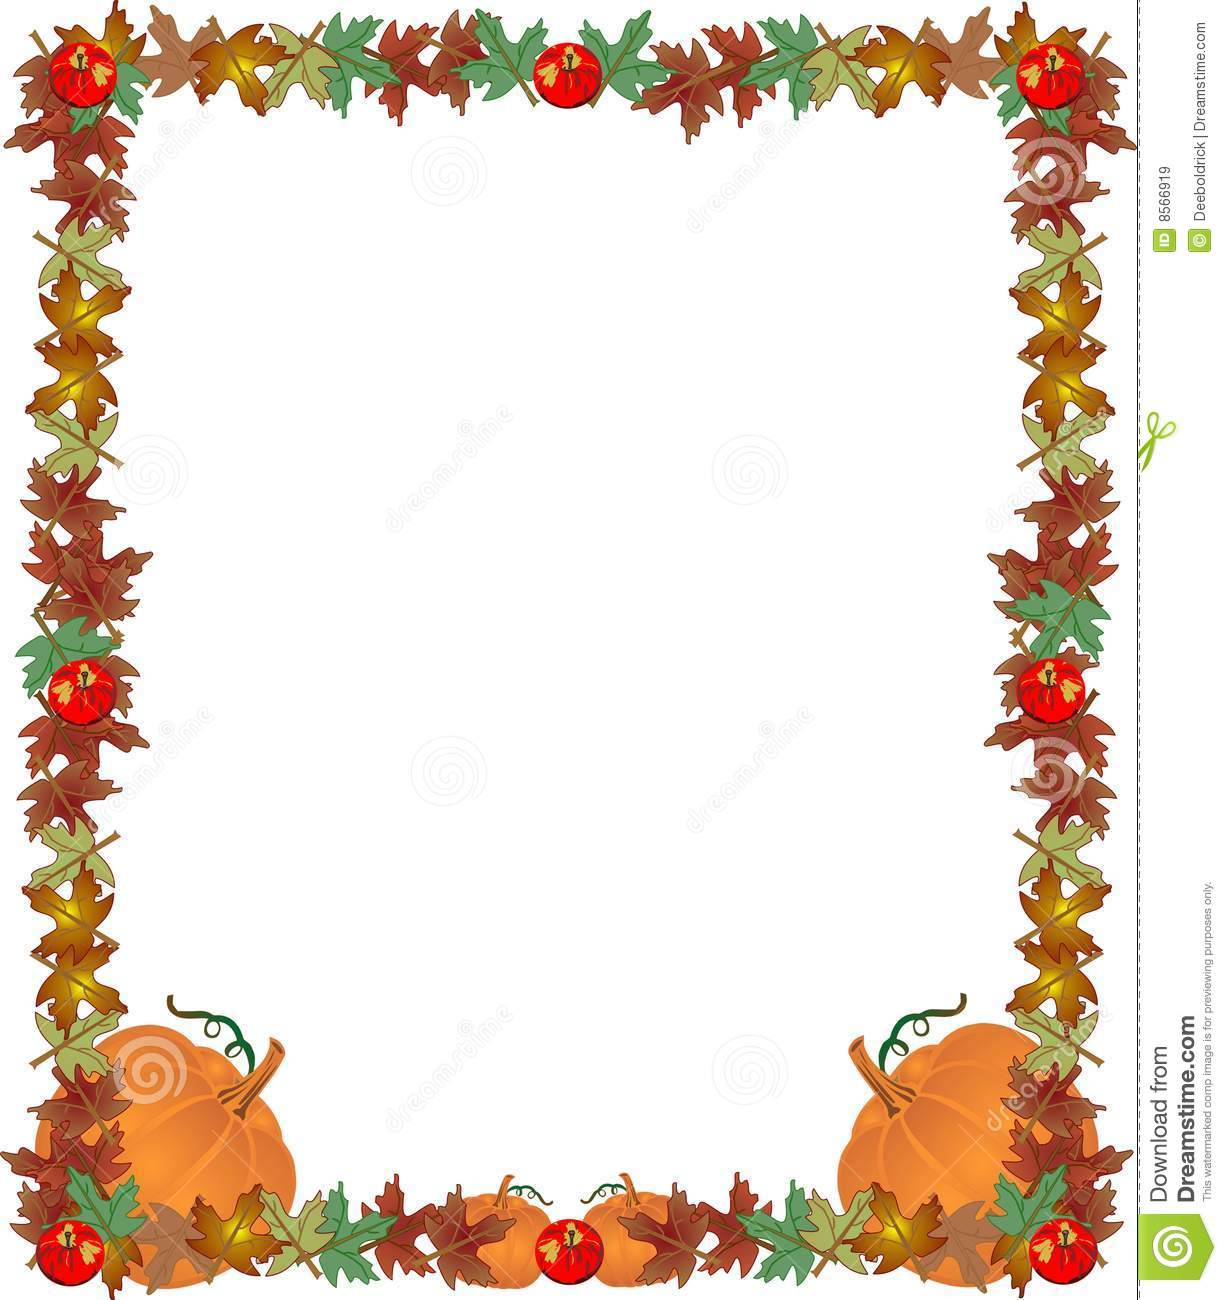 Fall Leaves Apples And Pumpkins  Creating A Great Frame Border